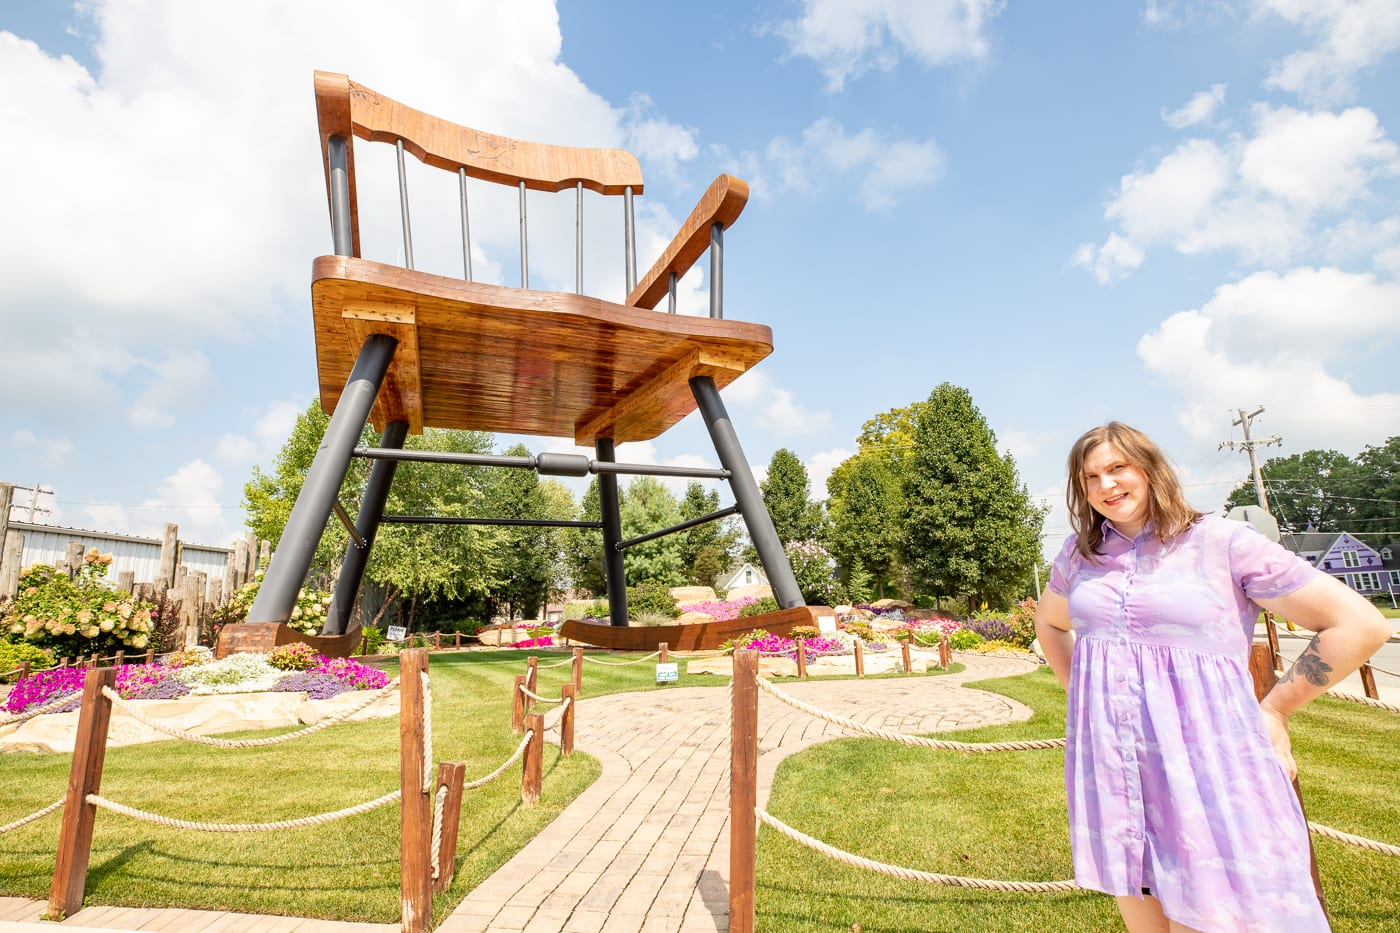 World's Largest Rocking Chair in Casey, Illinois roadside attraction